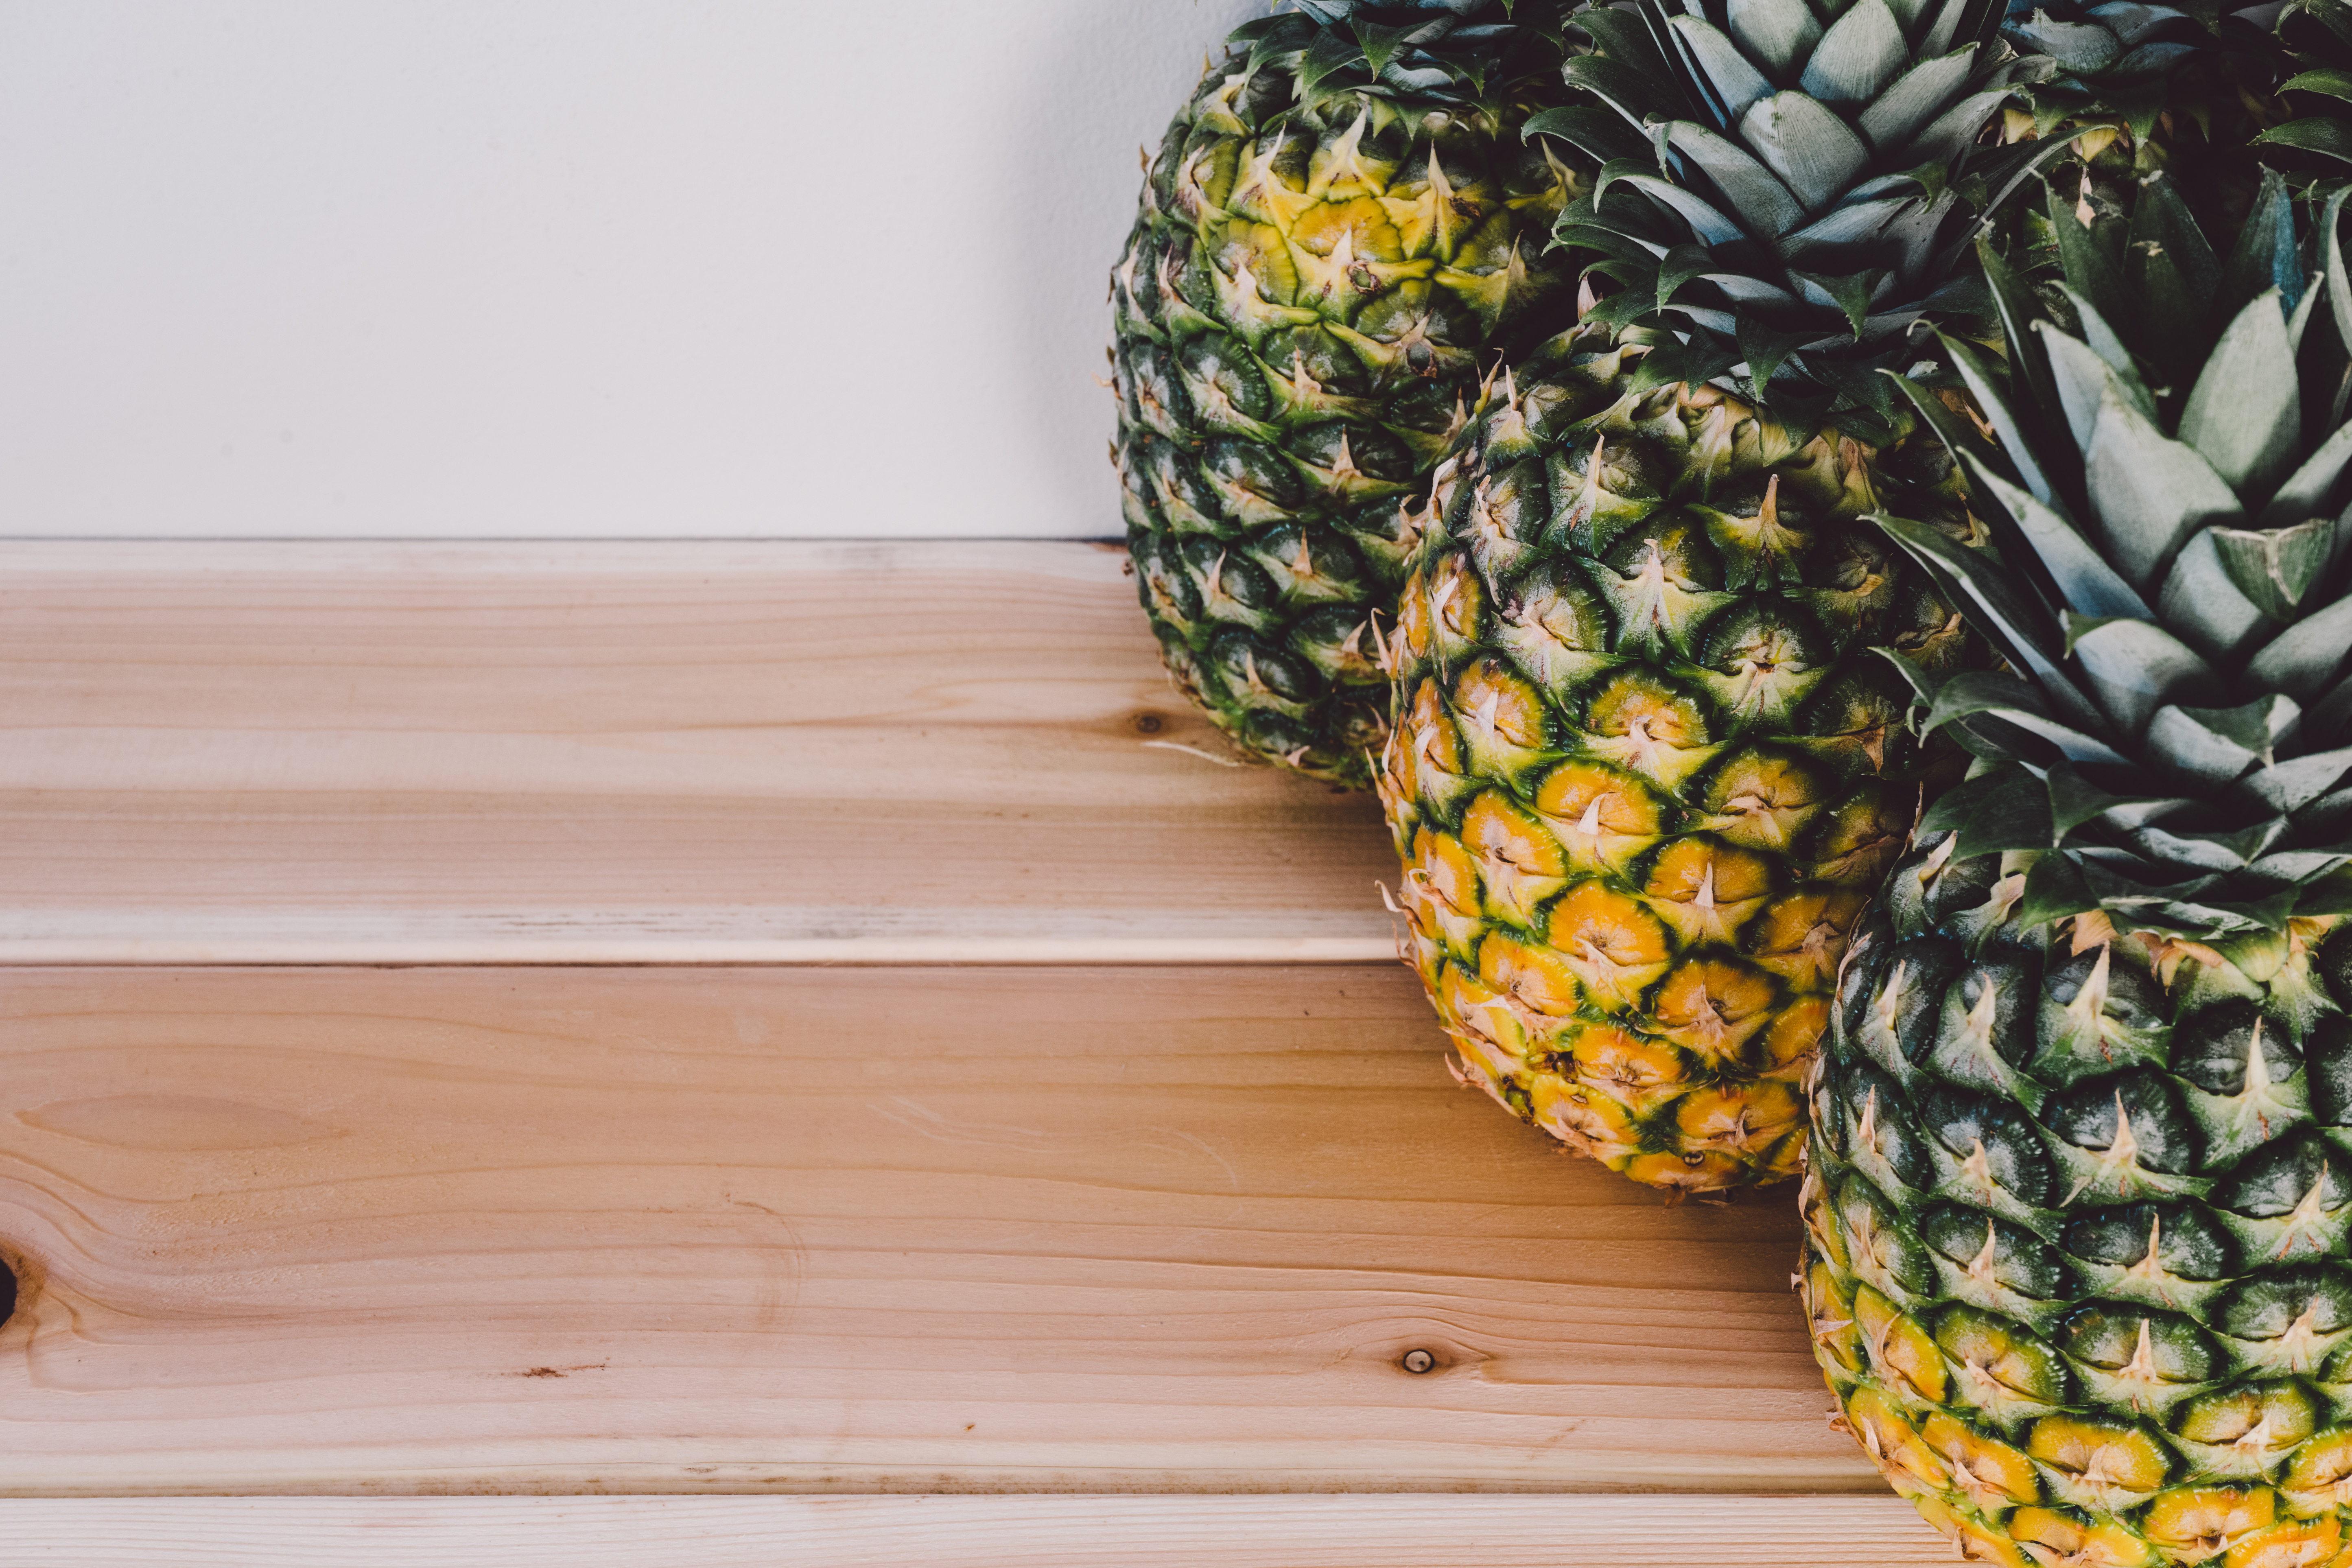 24 Wallpaper Iphone Free Stock Photo Of Bench Fruit Pineapple